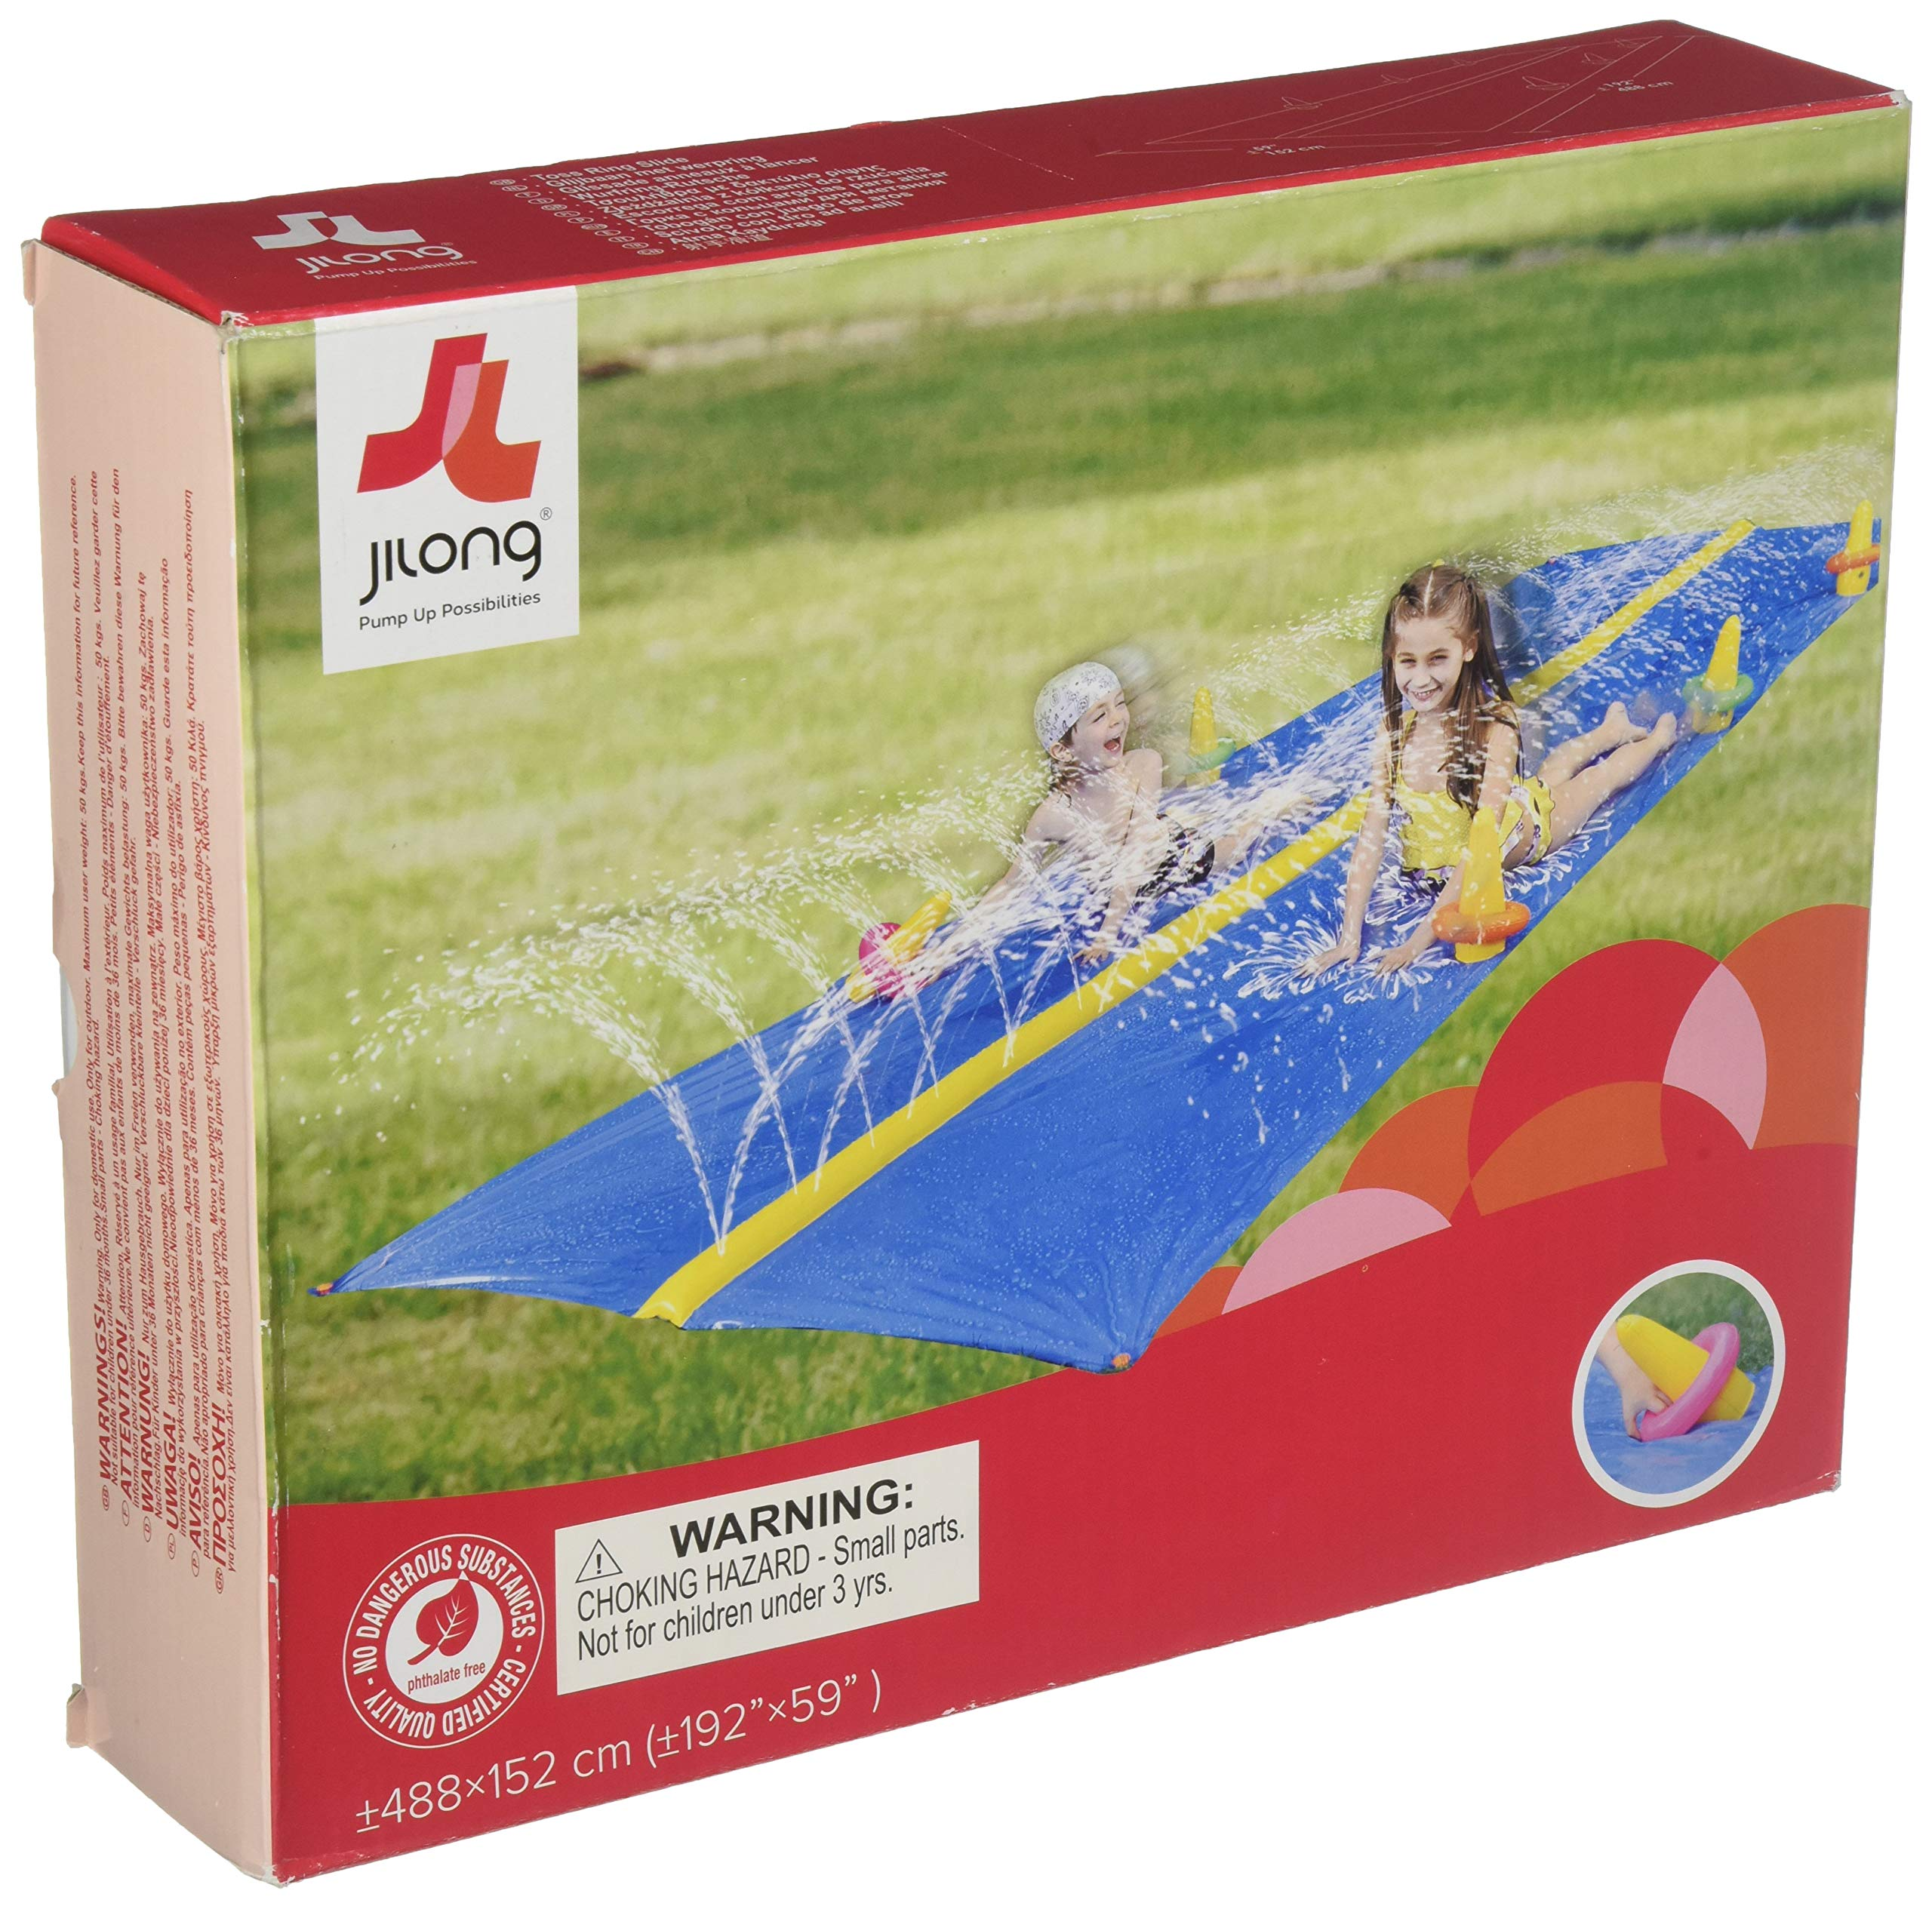 Jilong Ring Toss 2-Person Kids Water Slide for Ages 5+ by Jilong